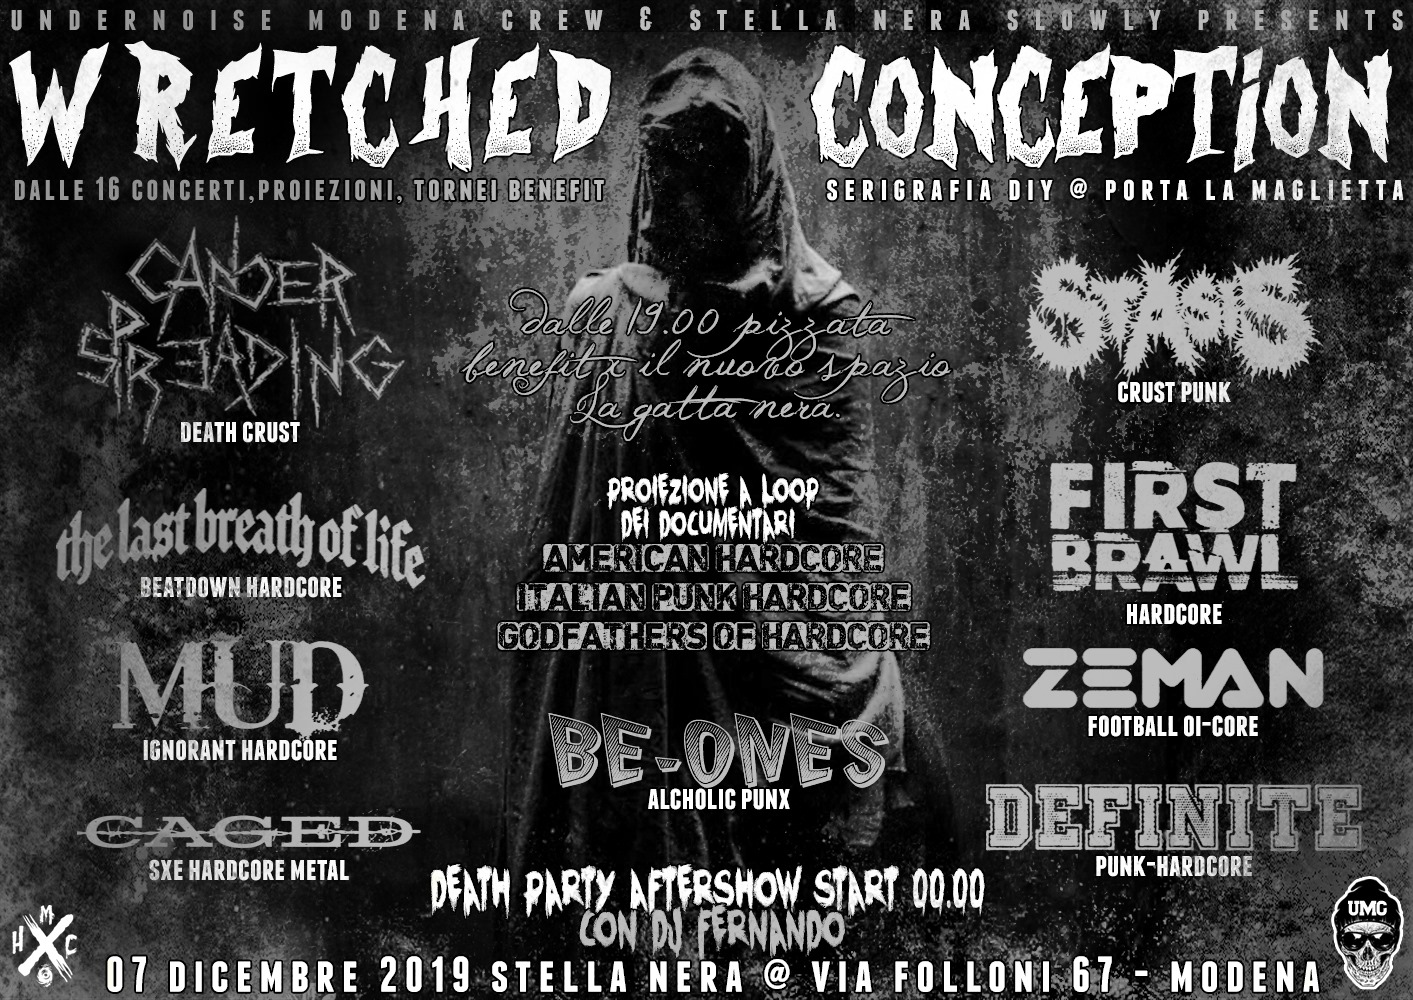 Wretched Conception minifest allo Stella Nera di Modena w/ Cancer Spreading, First Brawl, Mud, Caged, The Last Breast of Life, Be-one, Stasis, Zeman e after party